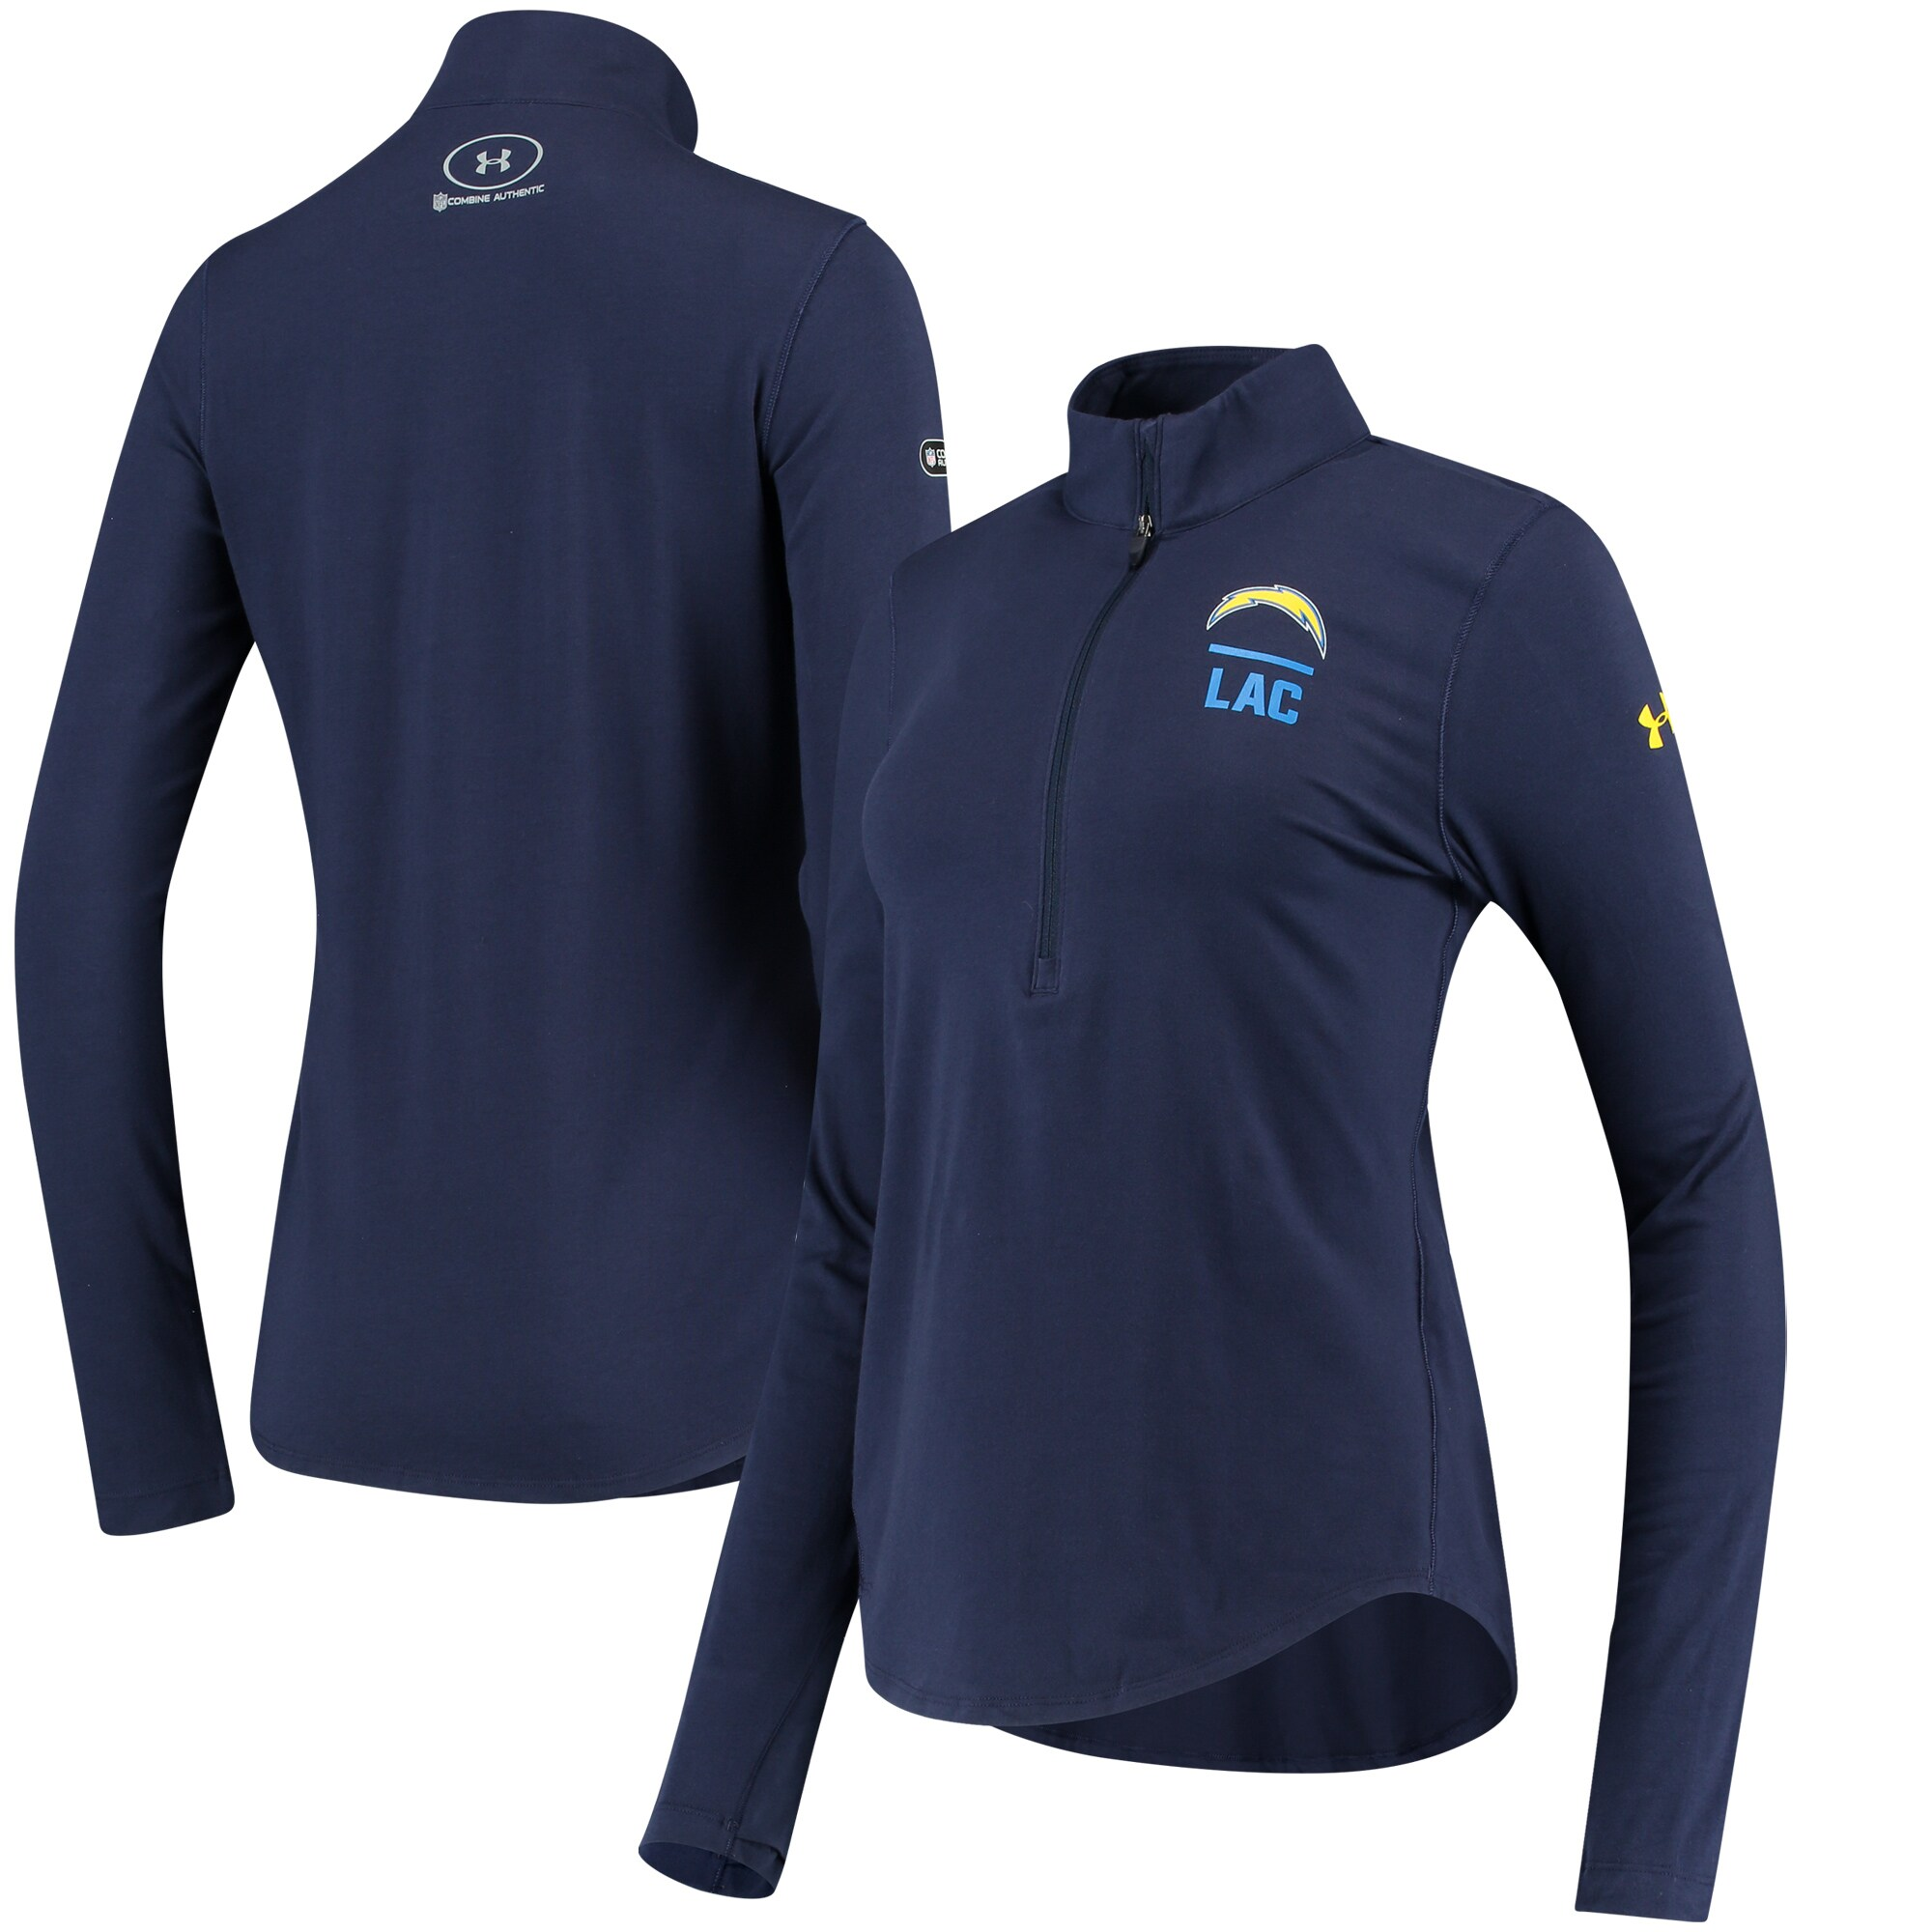 Los Angeles Chargers Under Armour Women's Combine Authentic Favorites Performance Tri-Blend Half-Zip Pullover Jacket - Navy